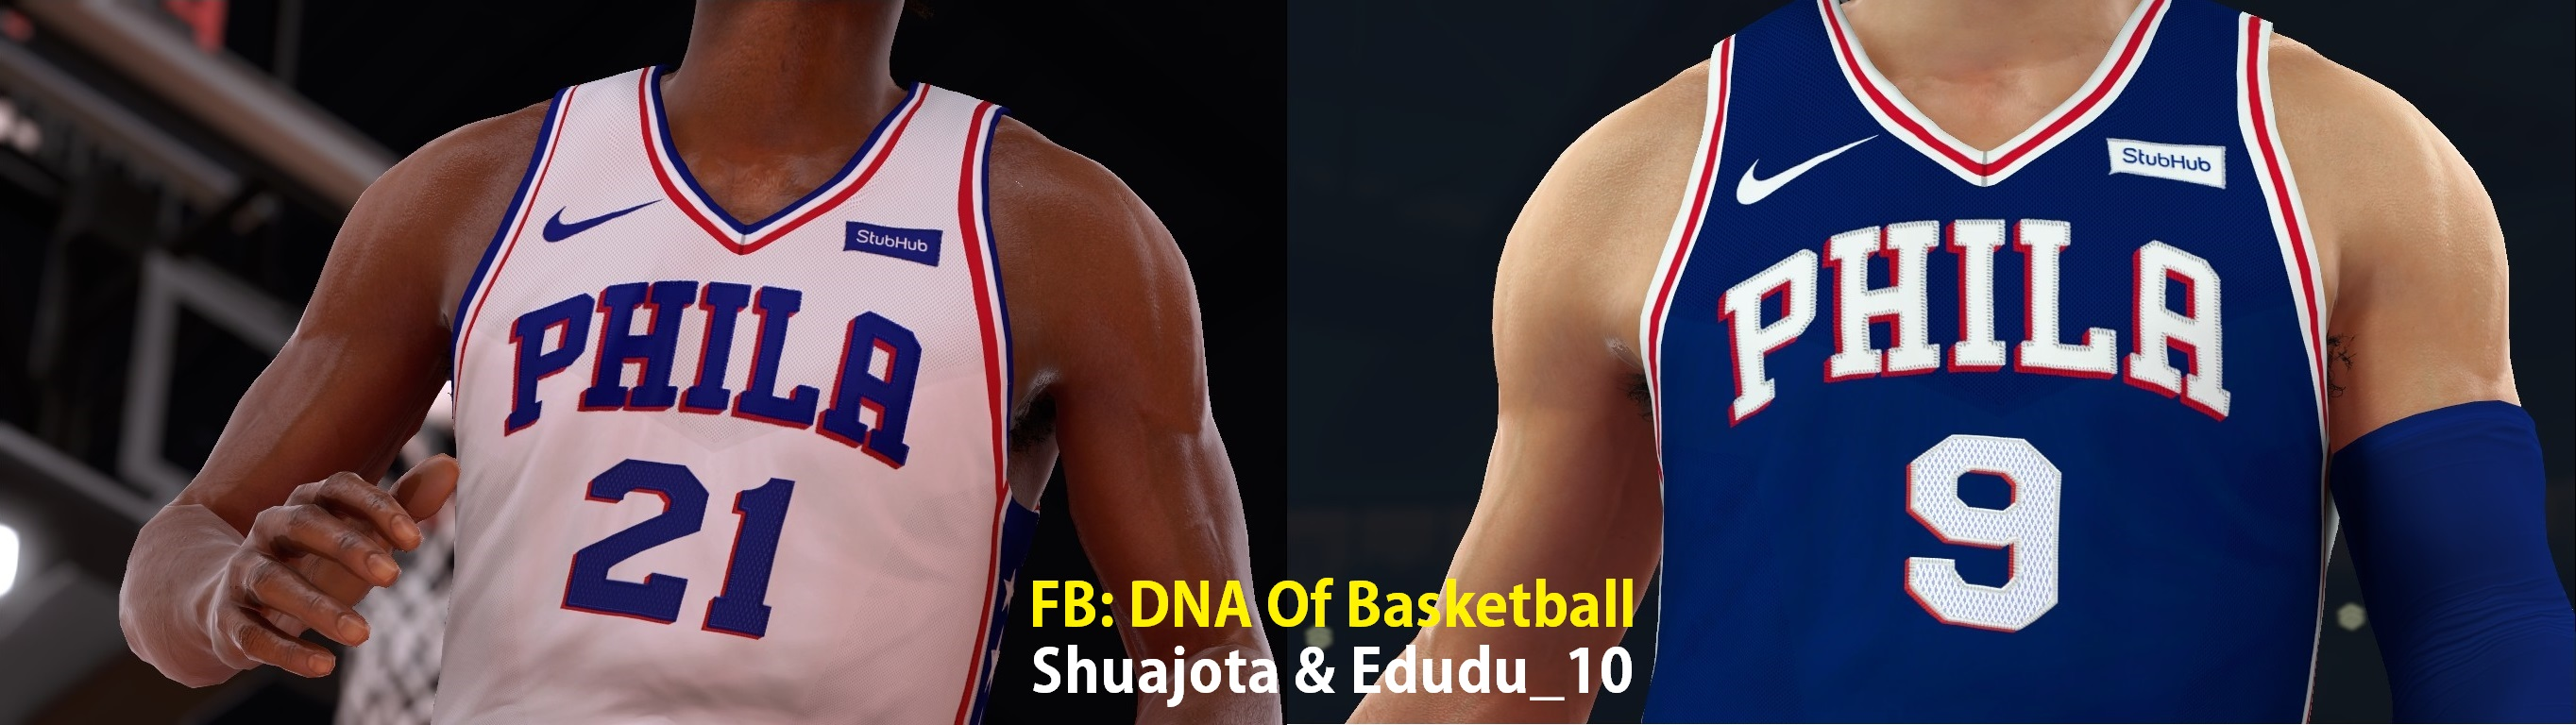 NLSC Forum • Downloads - Philadelphia 76ers Jerseys 2017-2018 97f76aff8